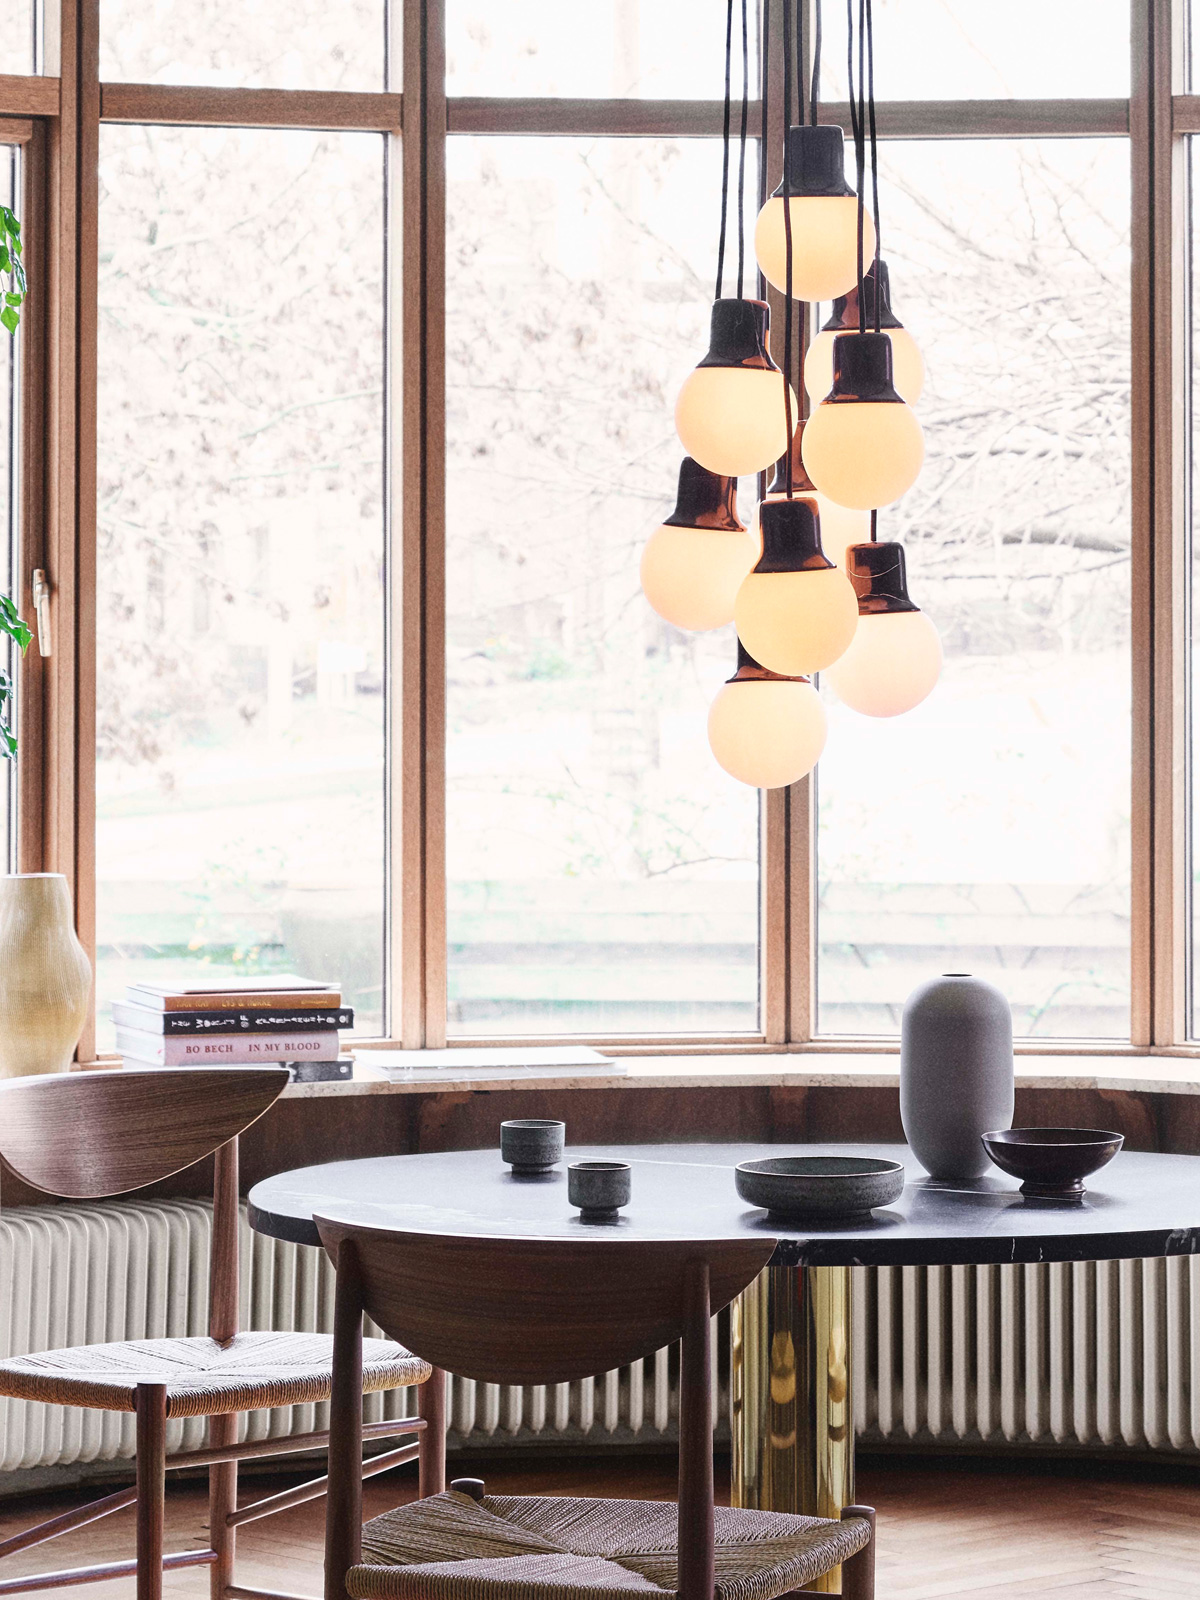 Mass Light NA6 Marmor Glas Leuchte &tradition DesignOrt Berlin